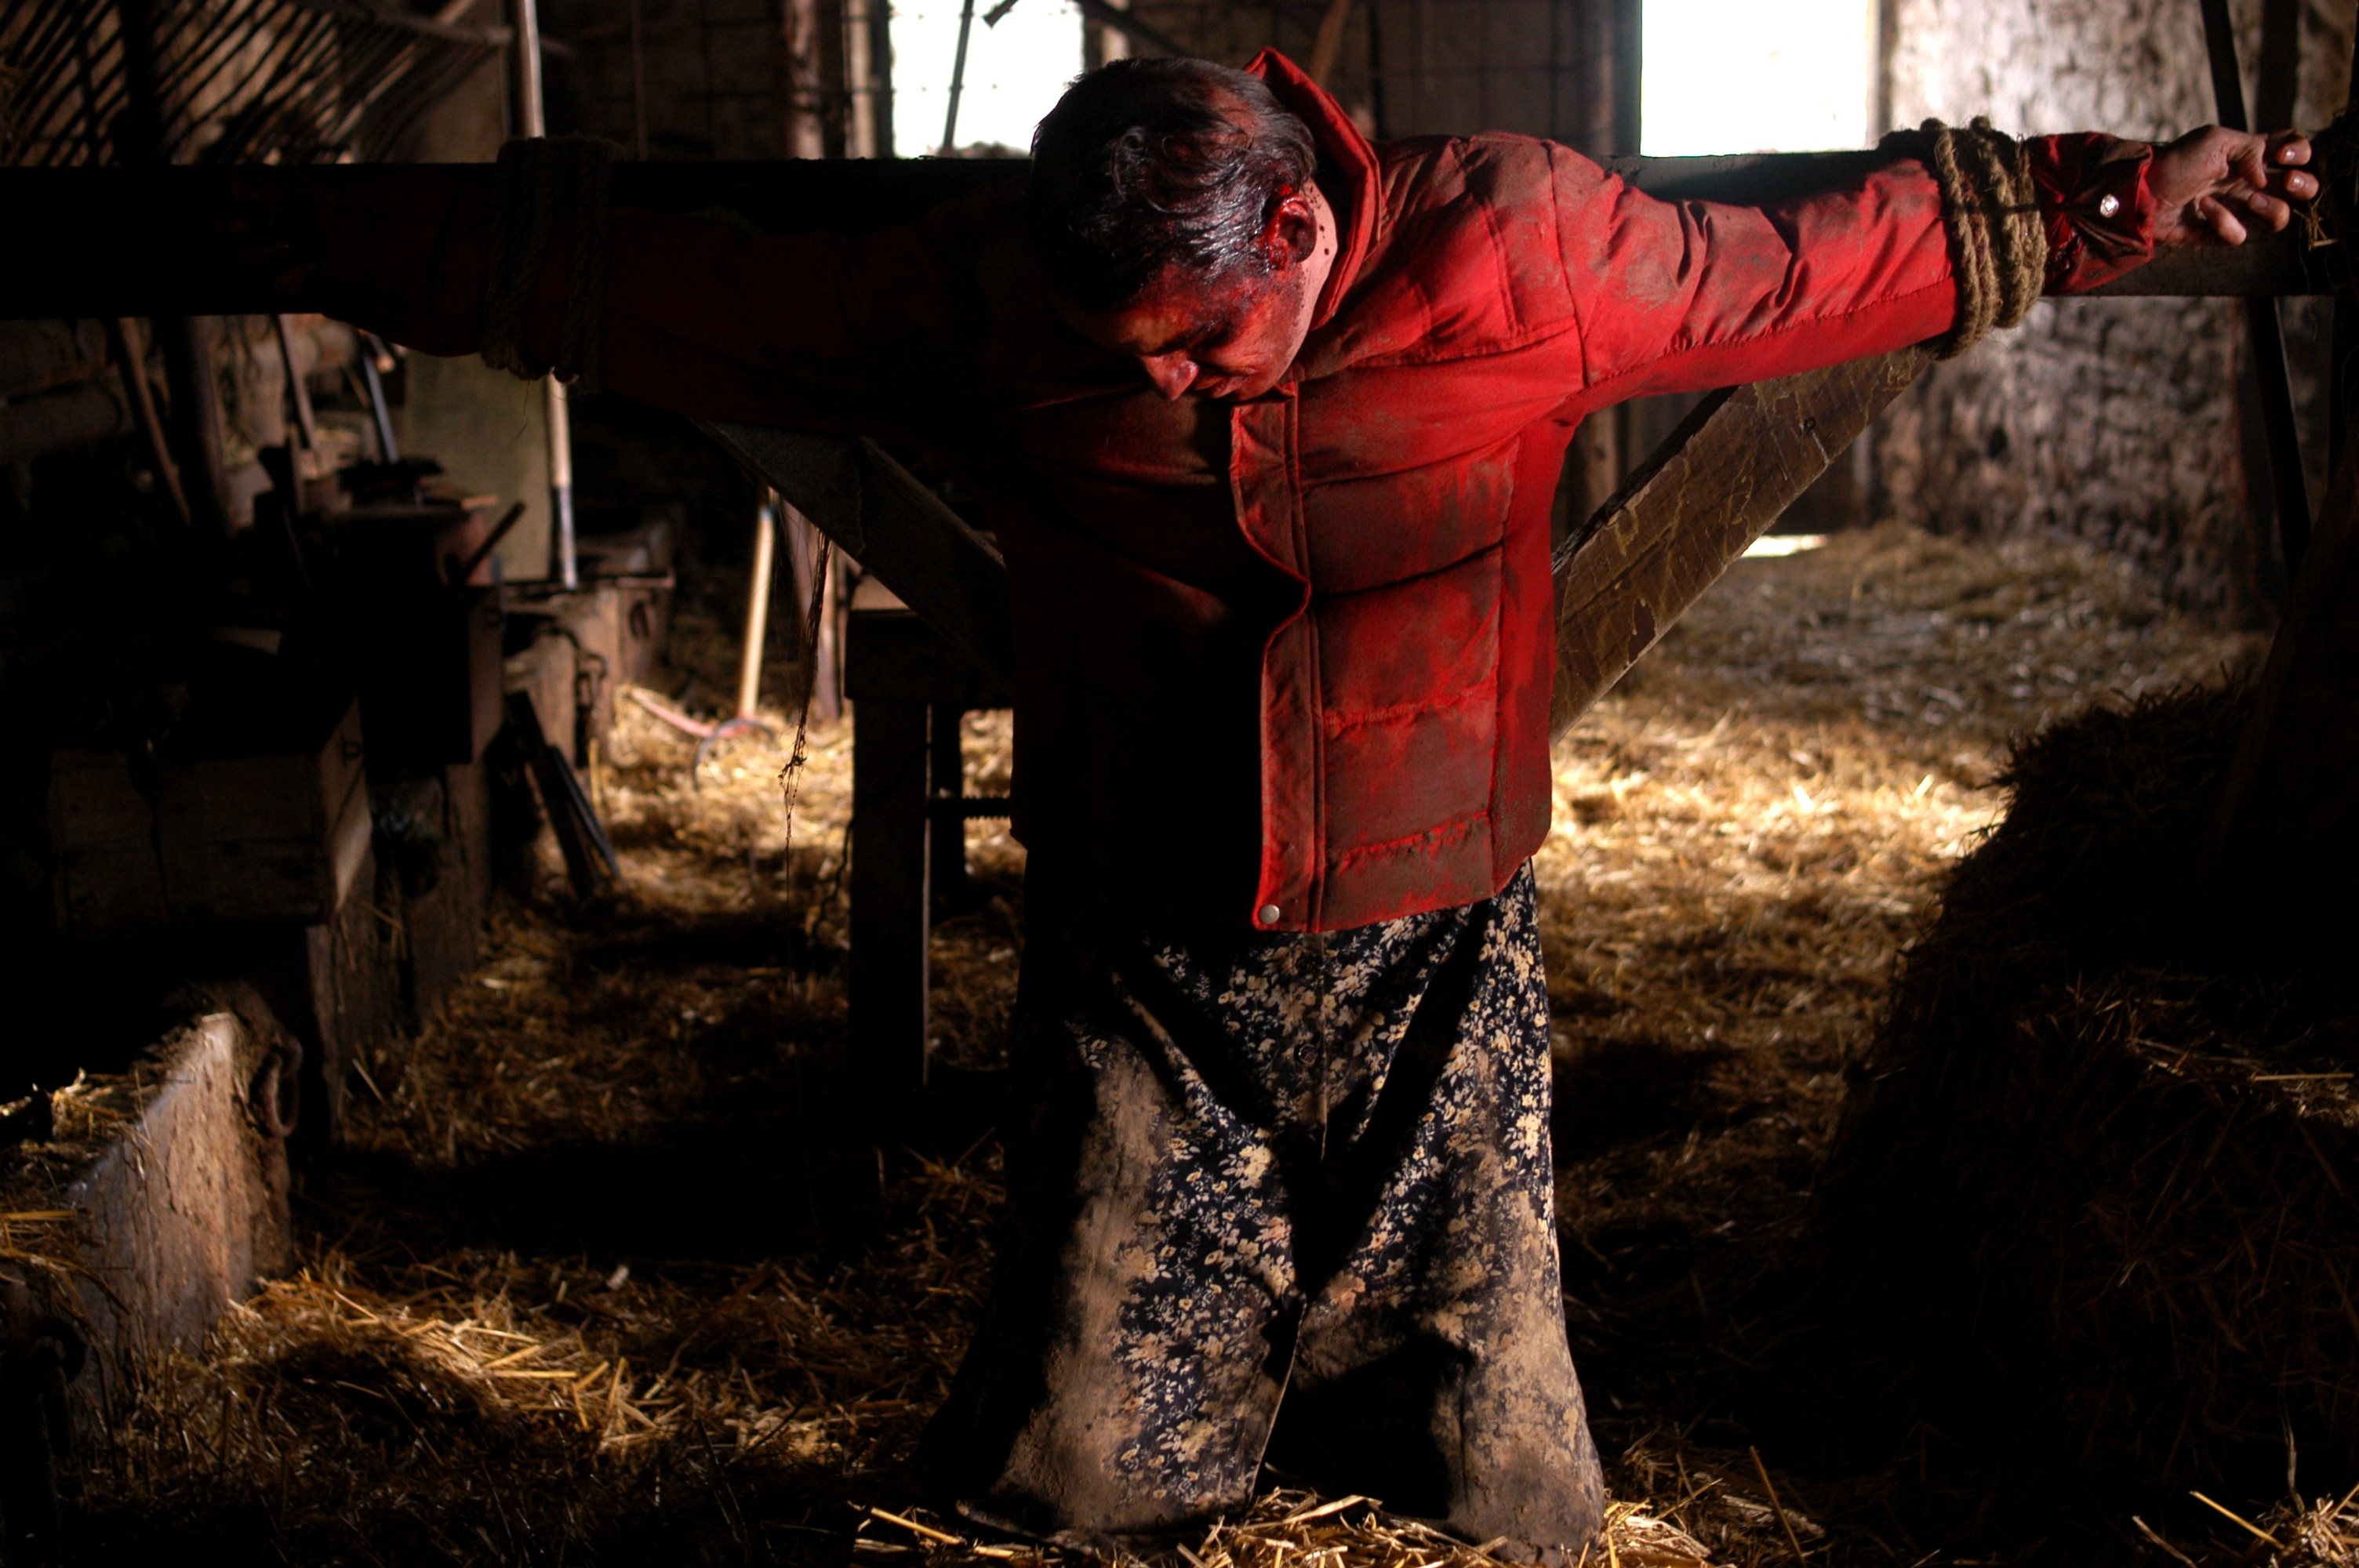 Laurent Lucas crucified in The Ordeal (2004)